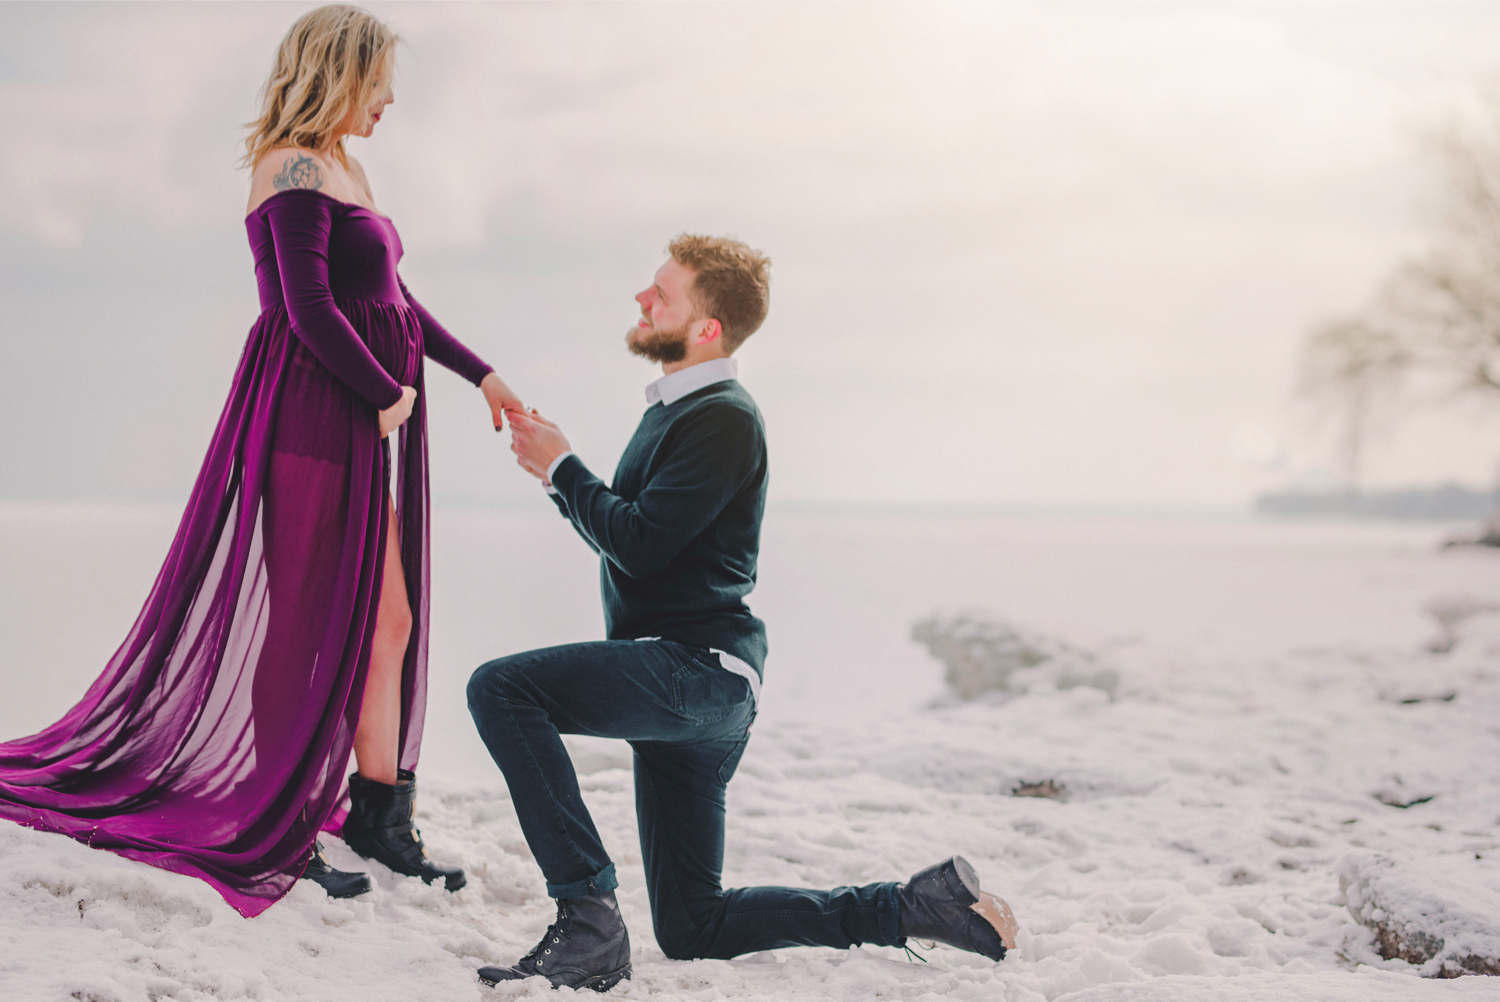 Image 3 of Maternity Shoot Turns into Surprise Marriage Proposal